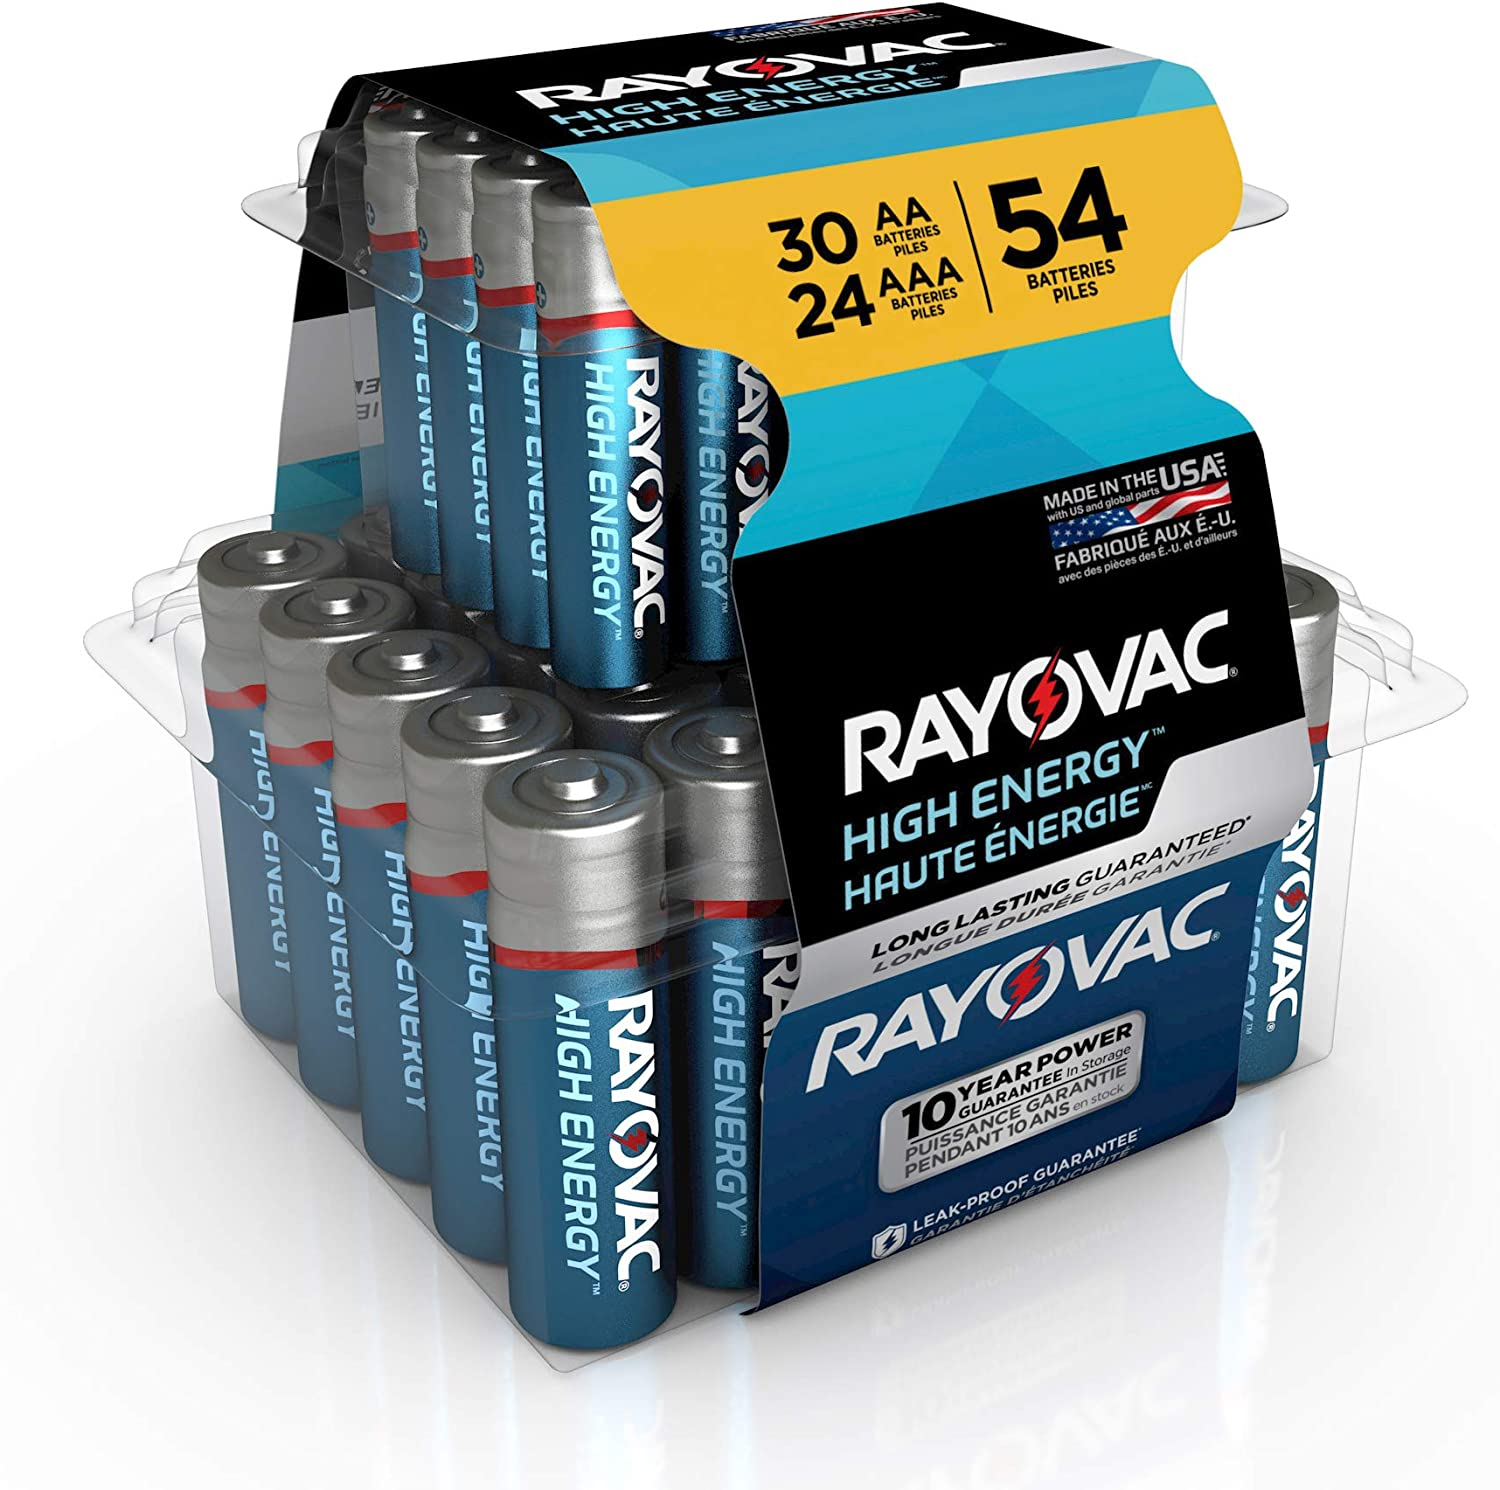 Rayovac AA Batteries & AAA Batteries Combo Pack, 30 AA and 24 AAA (54 Battery Count) (AL-54PP): Home Improvement